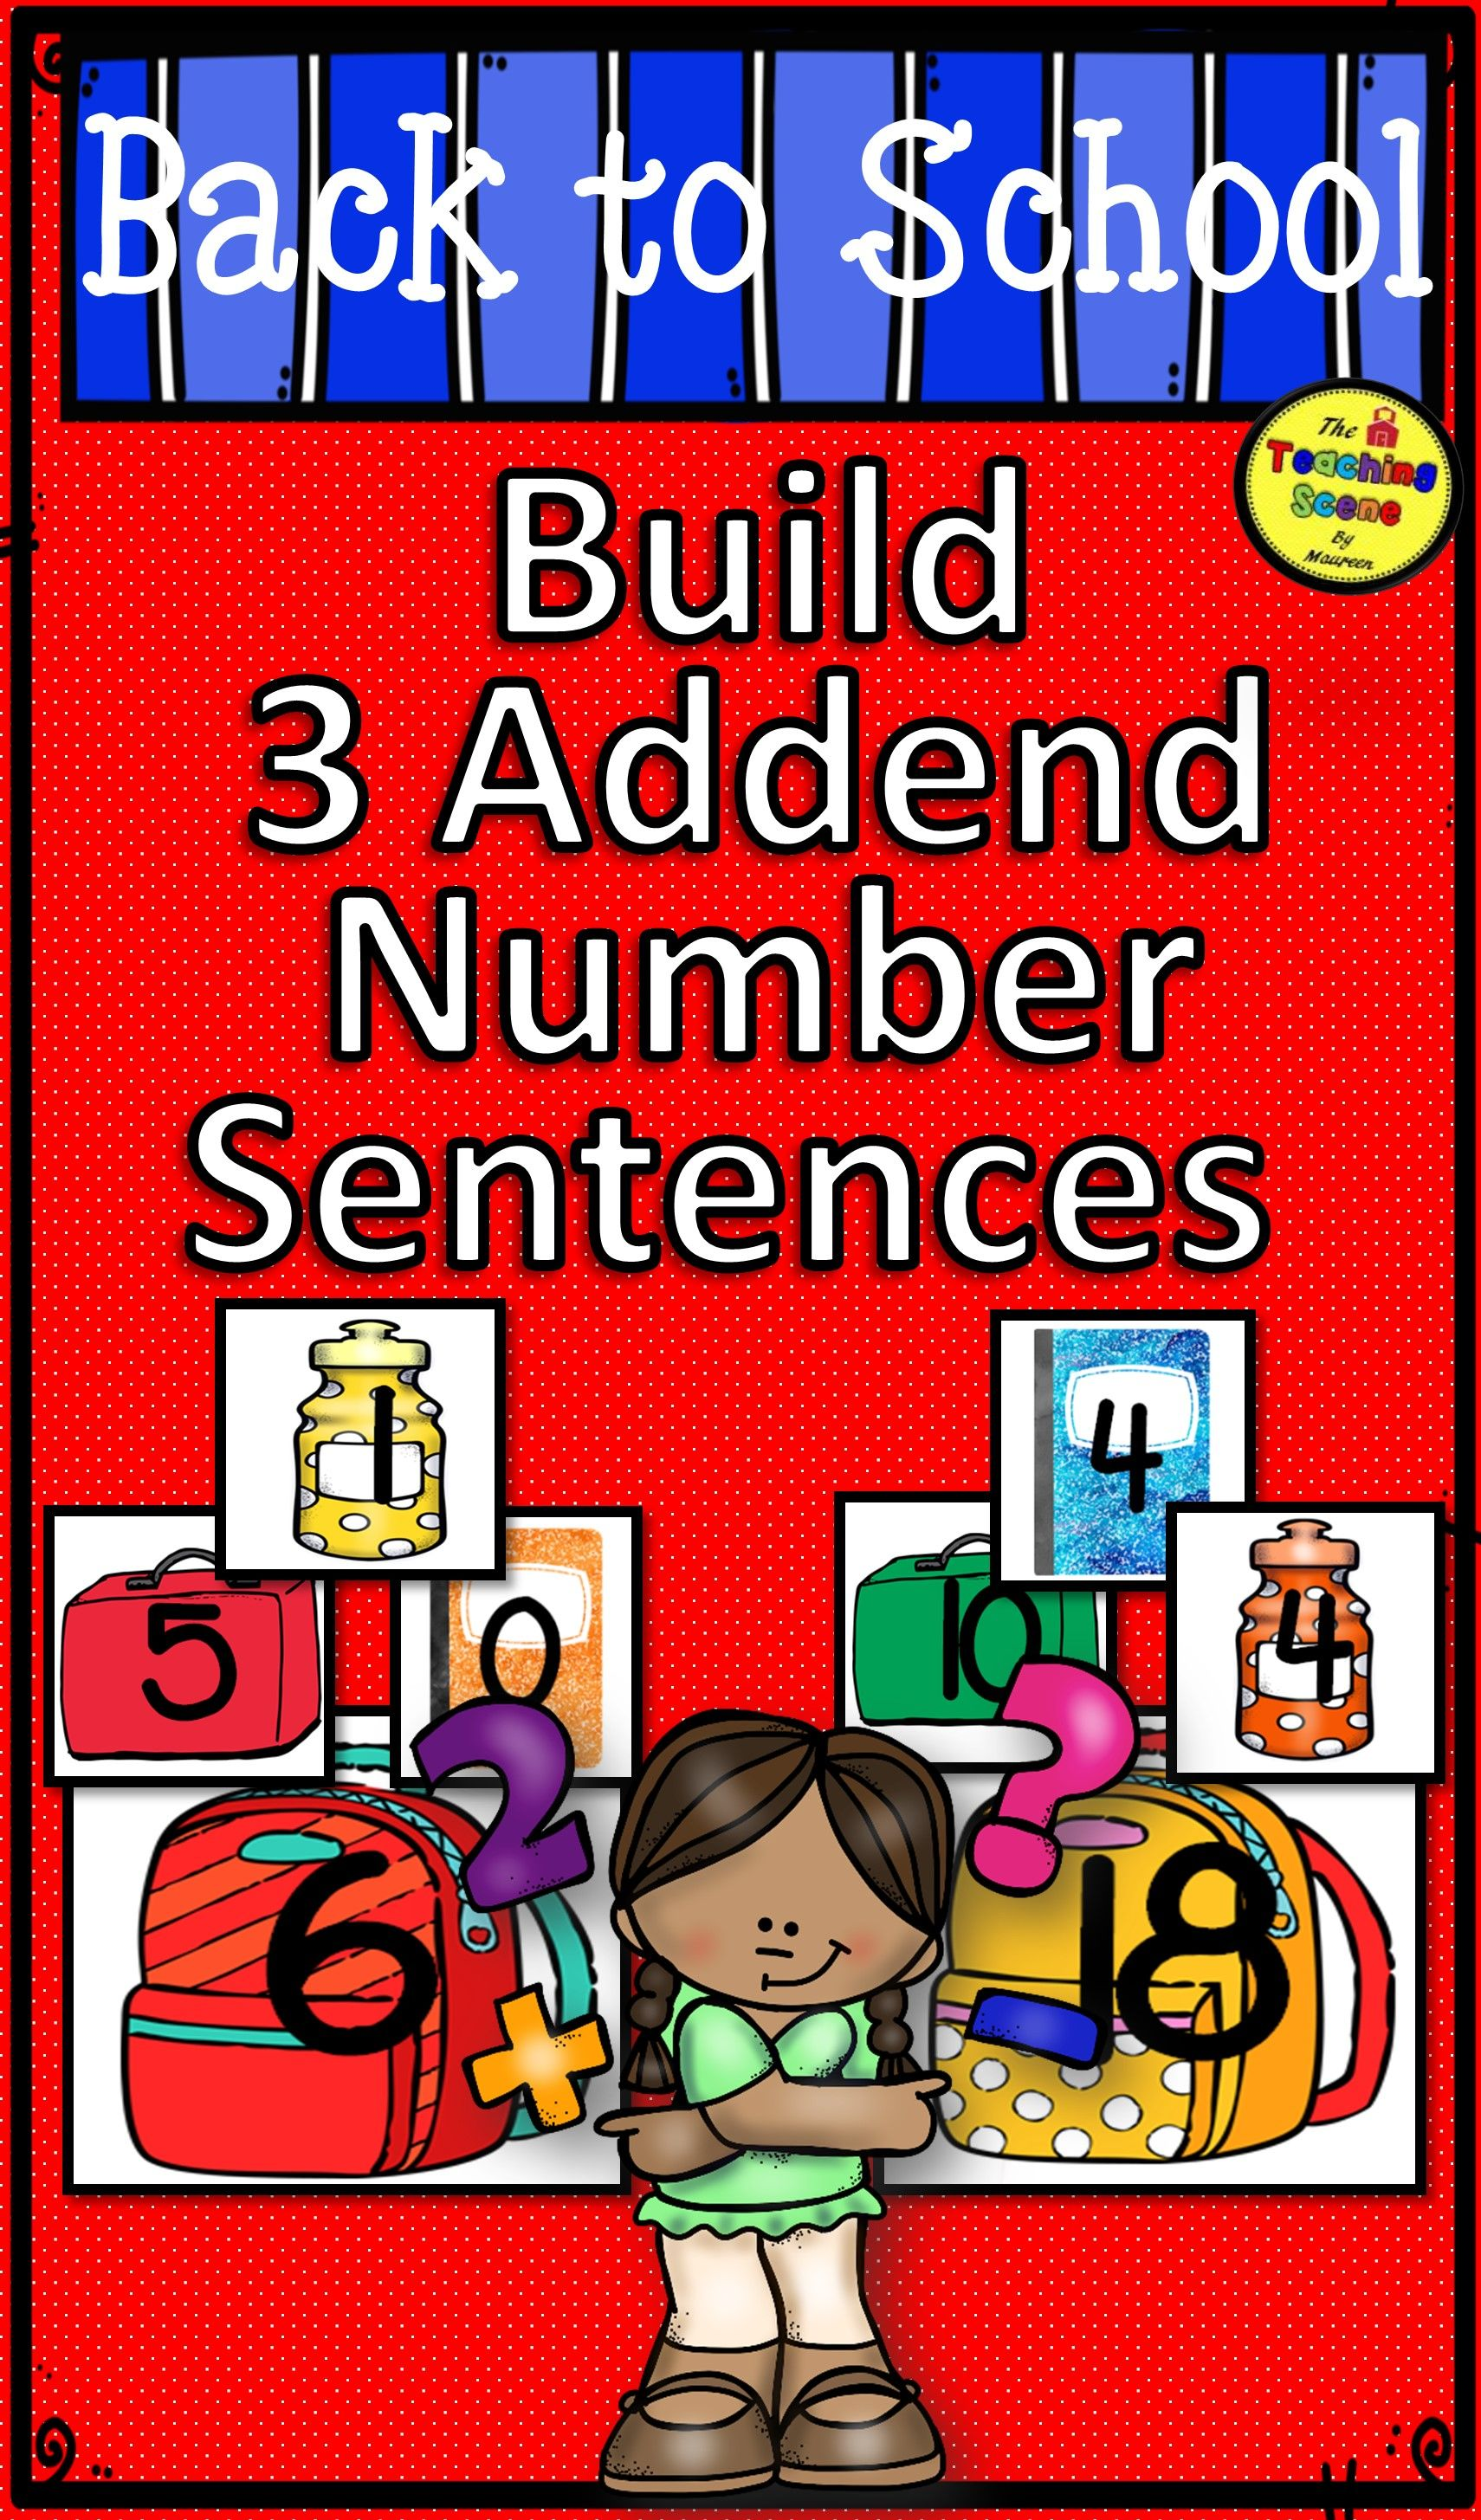 Back To School Build A 3 Addend Addition Or Subtraction